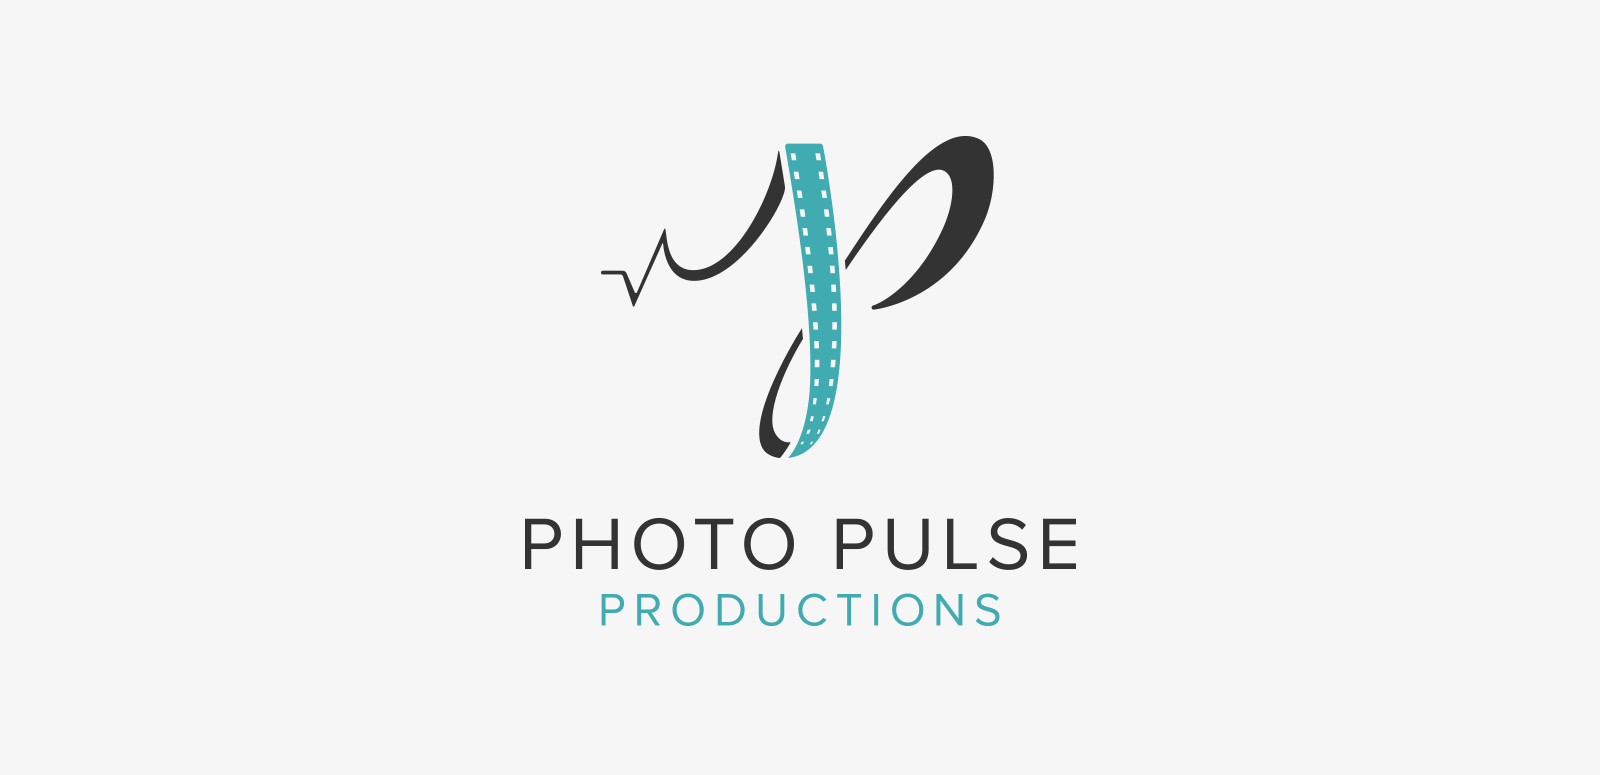 production company logos